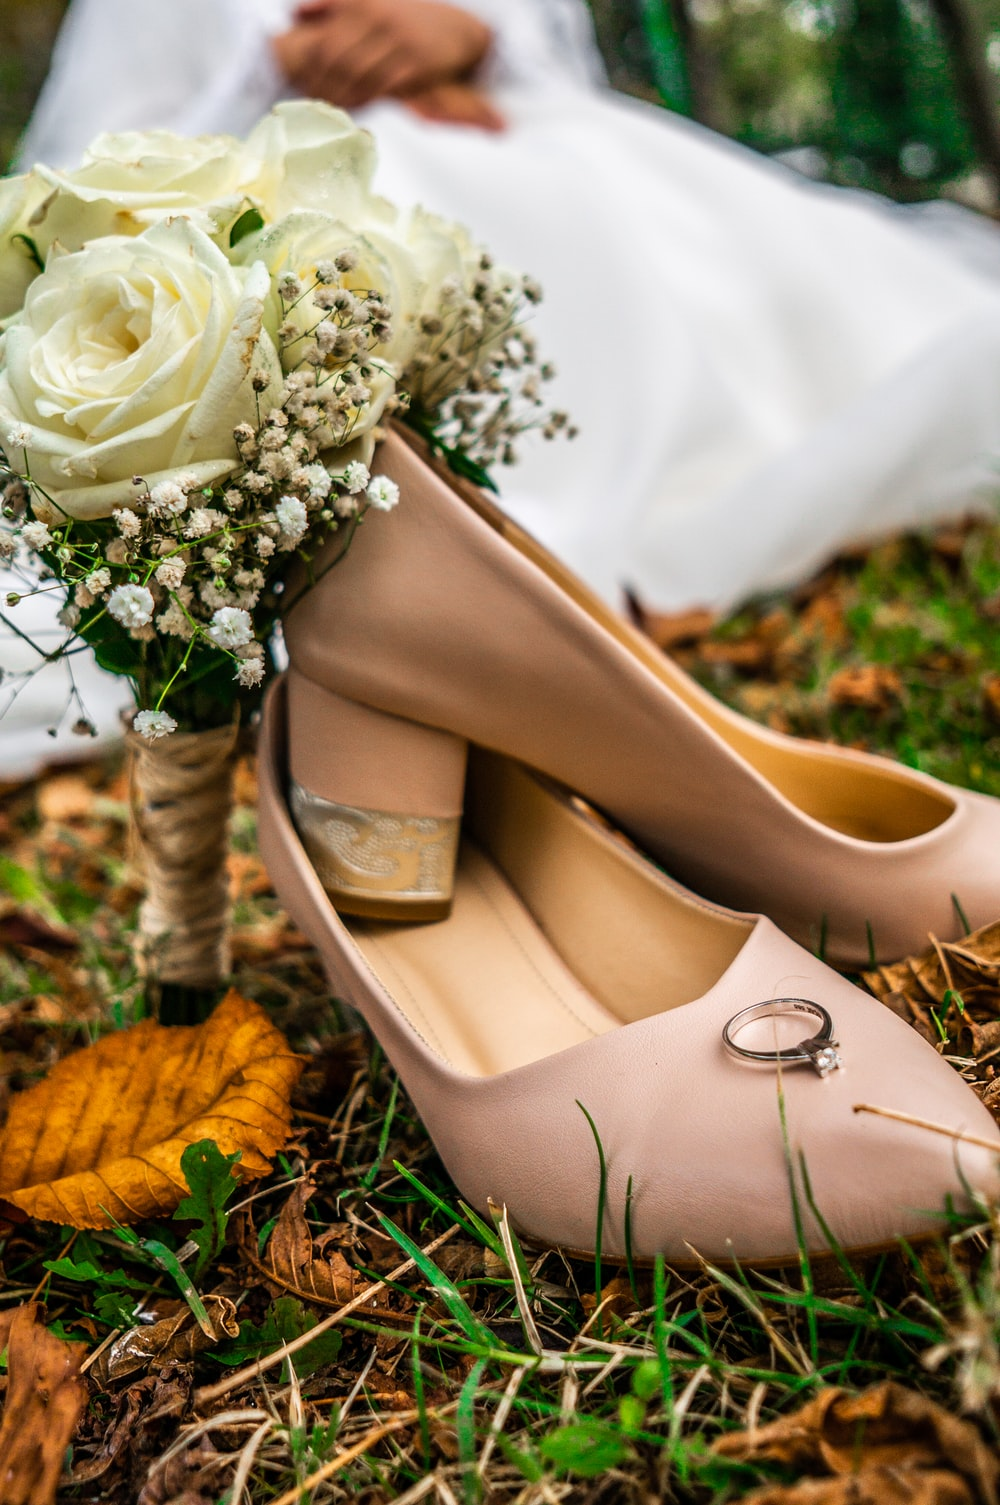 gold solitaire ring placed on top brown leather shoe on grass